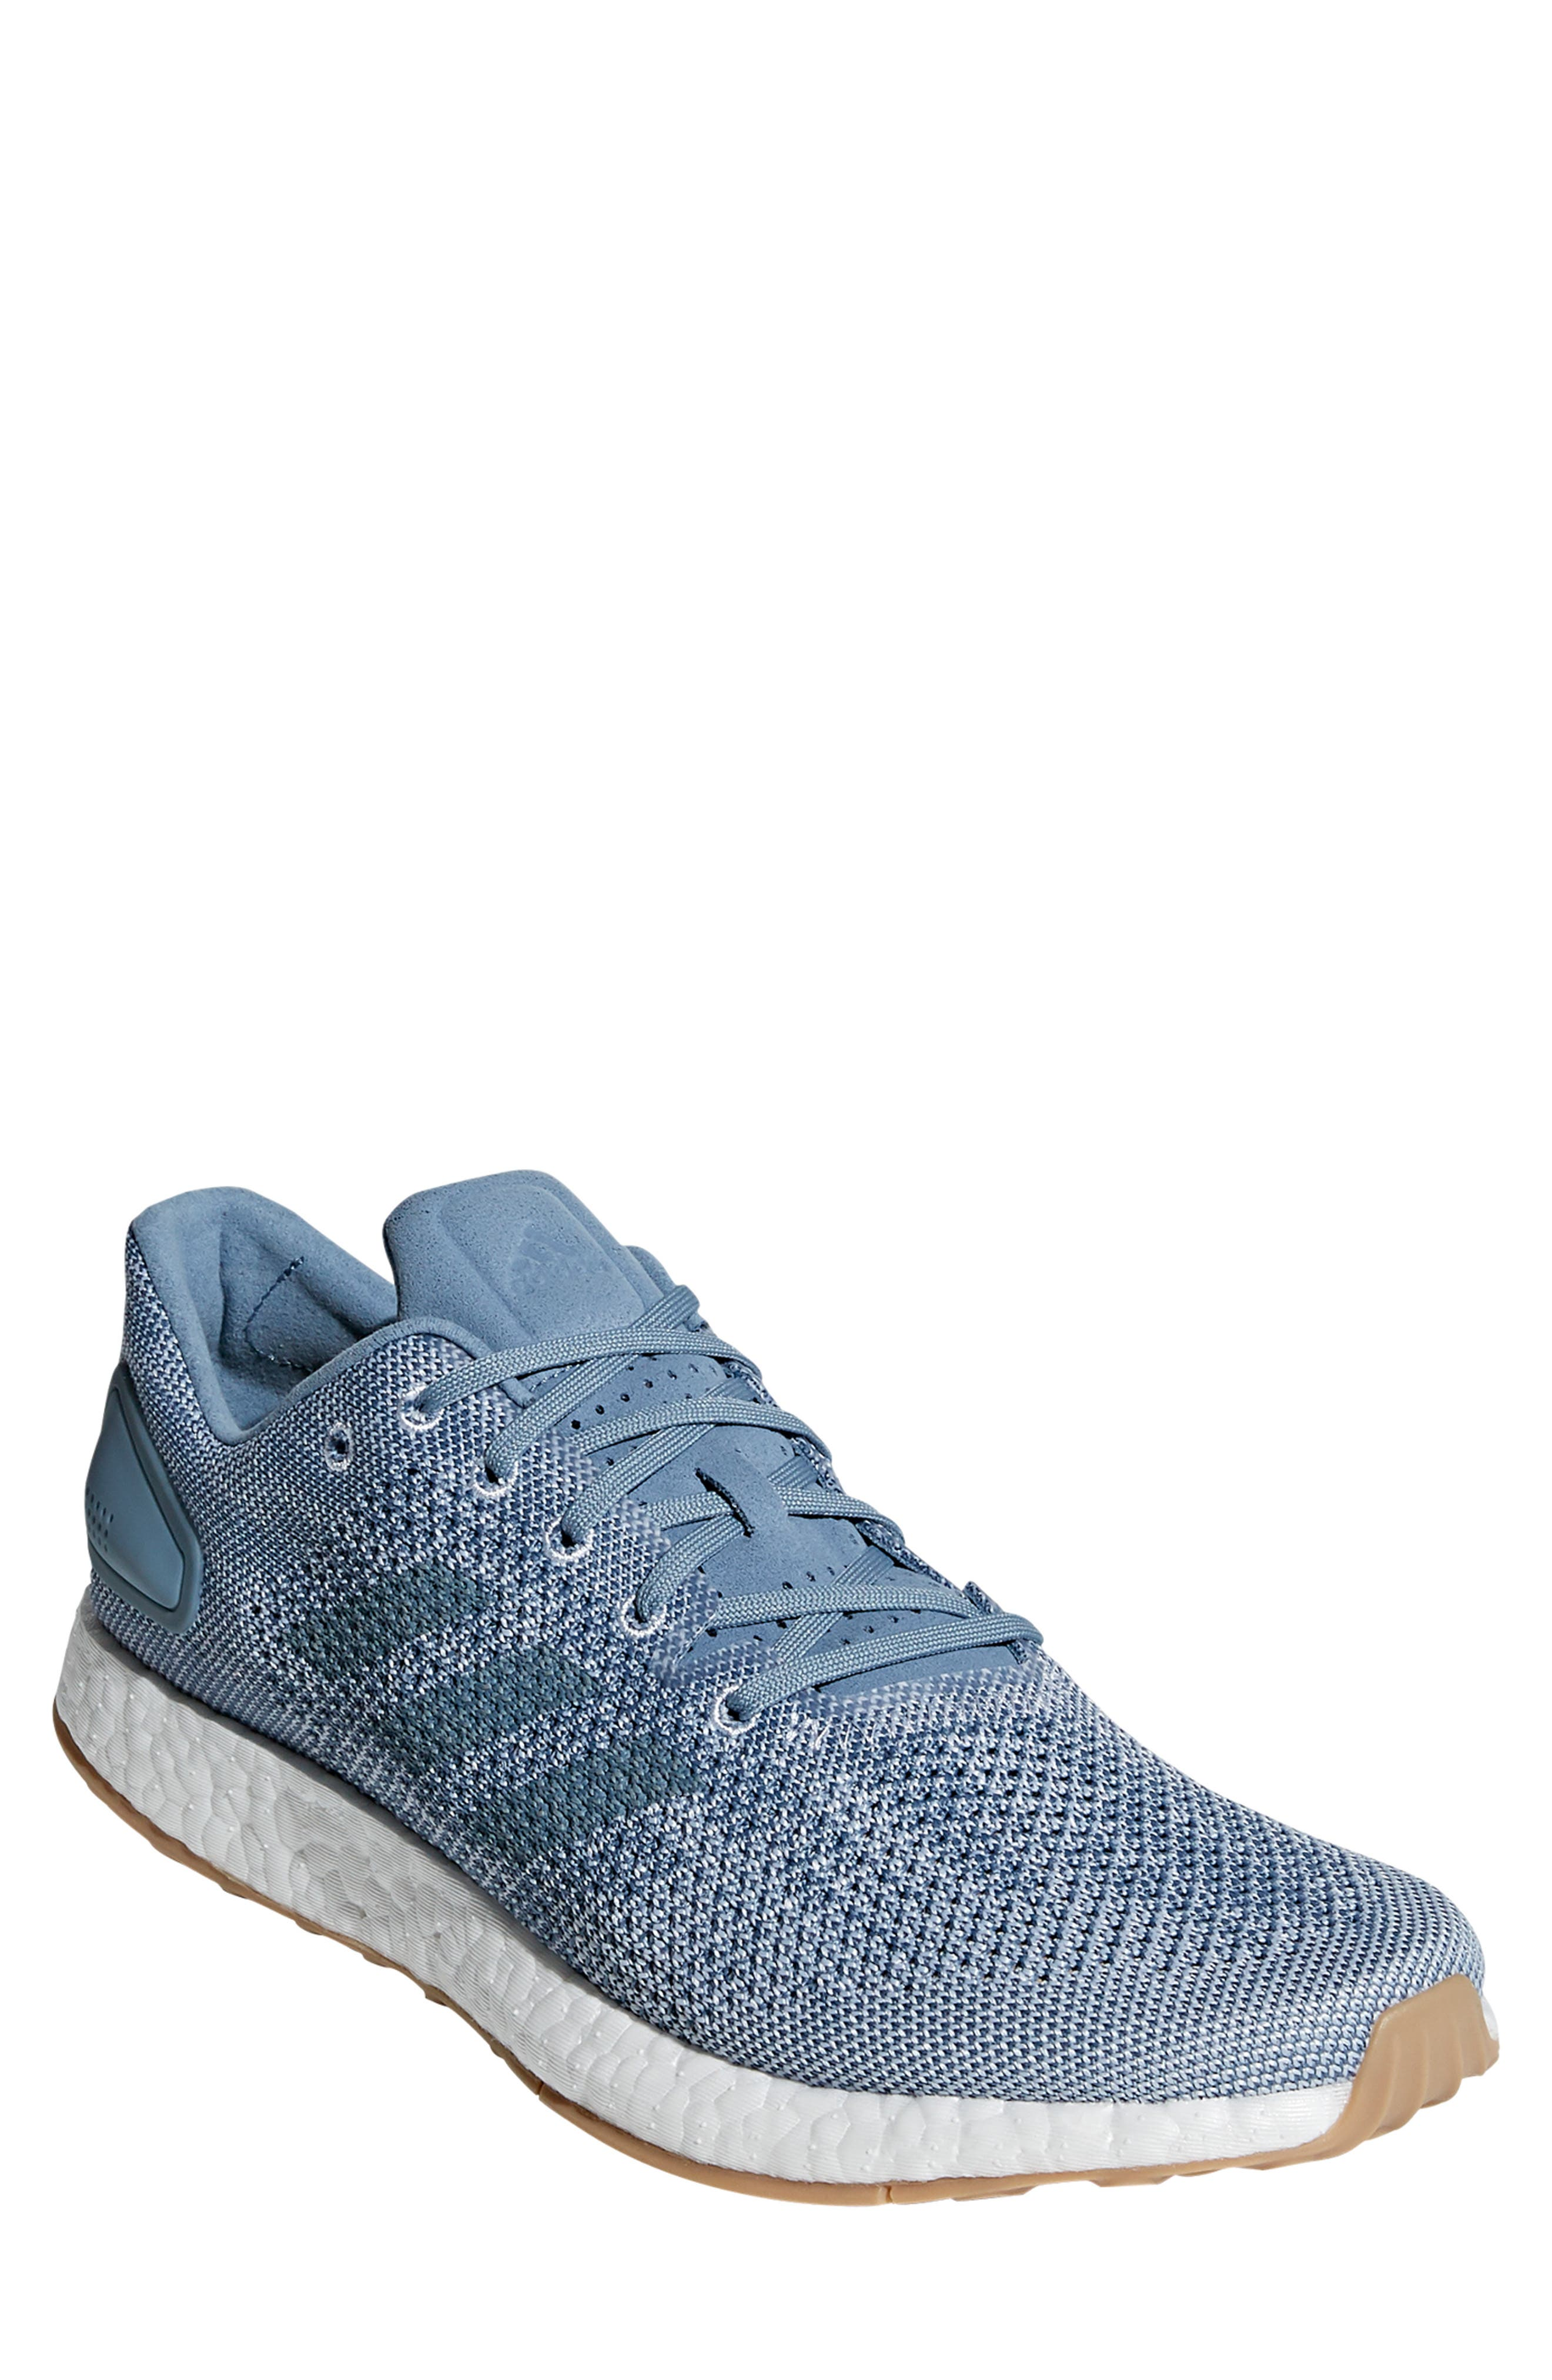 PureBoost DPR Running Shoe,                             Main thumbnail 1, color,                             360